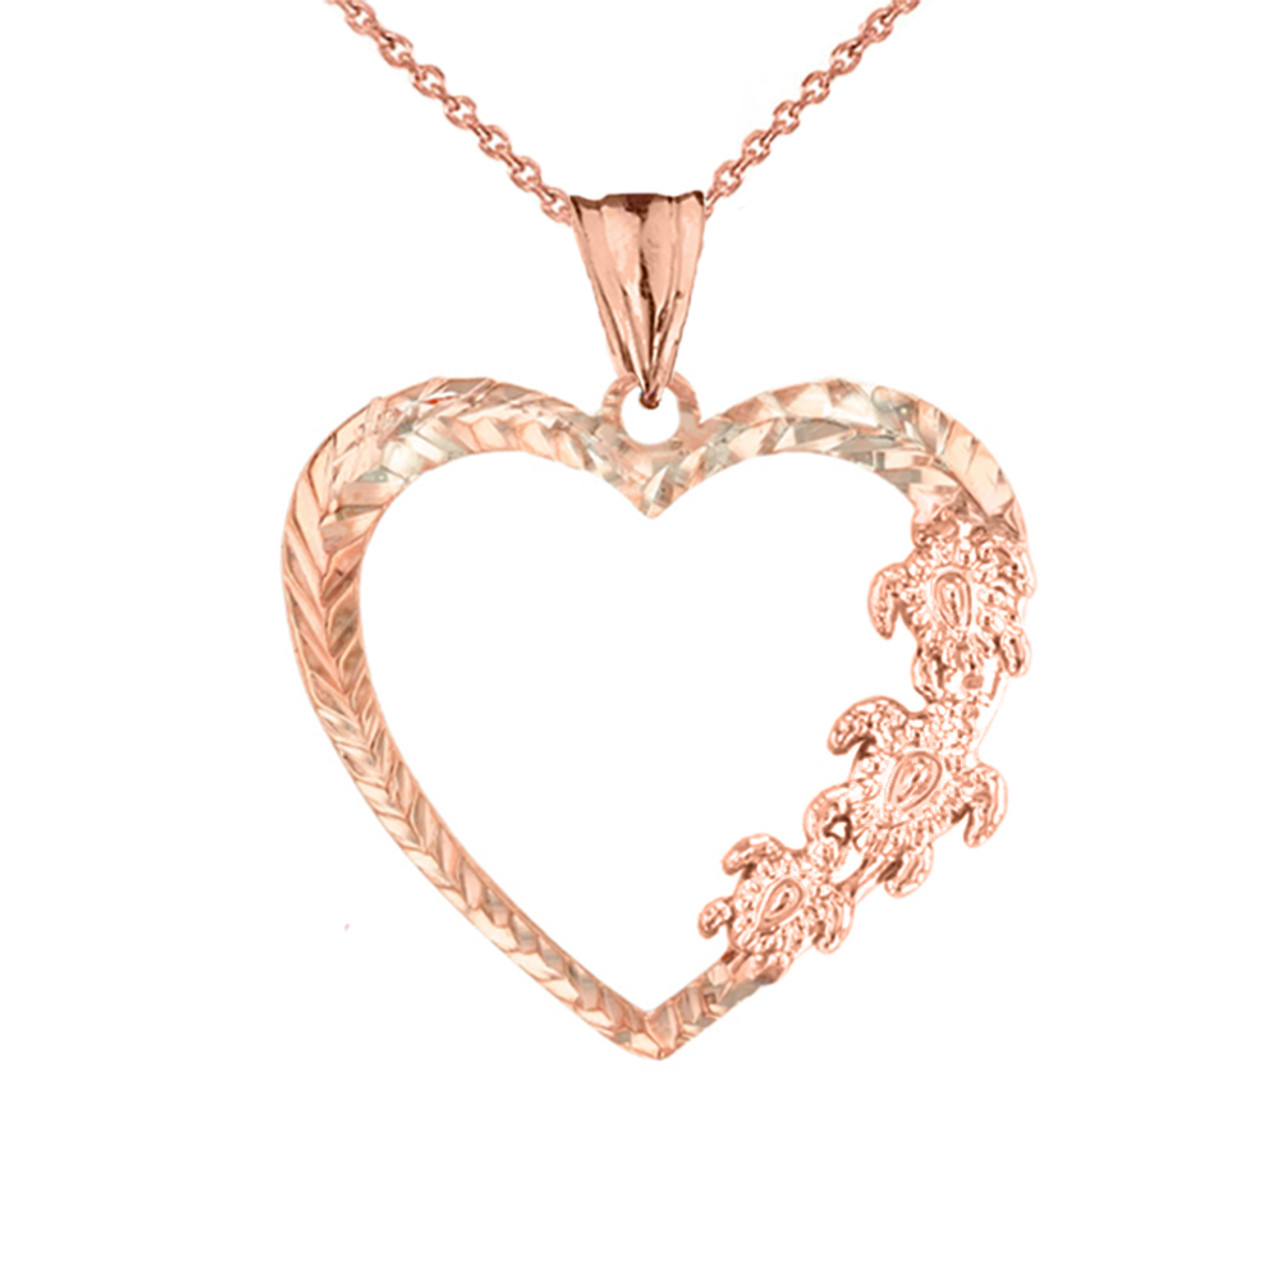 Solid Rose Gold 10K Simple Heart Pendant Necklace